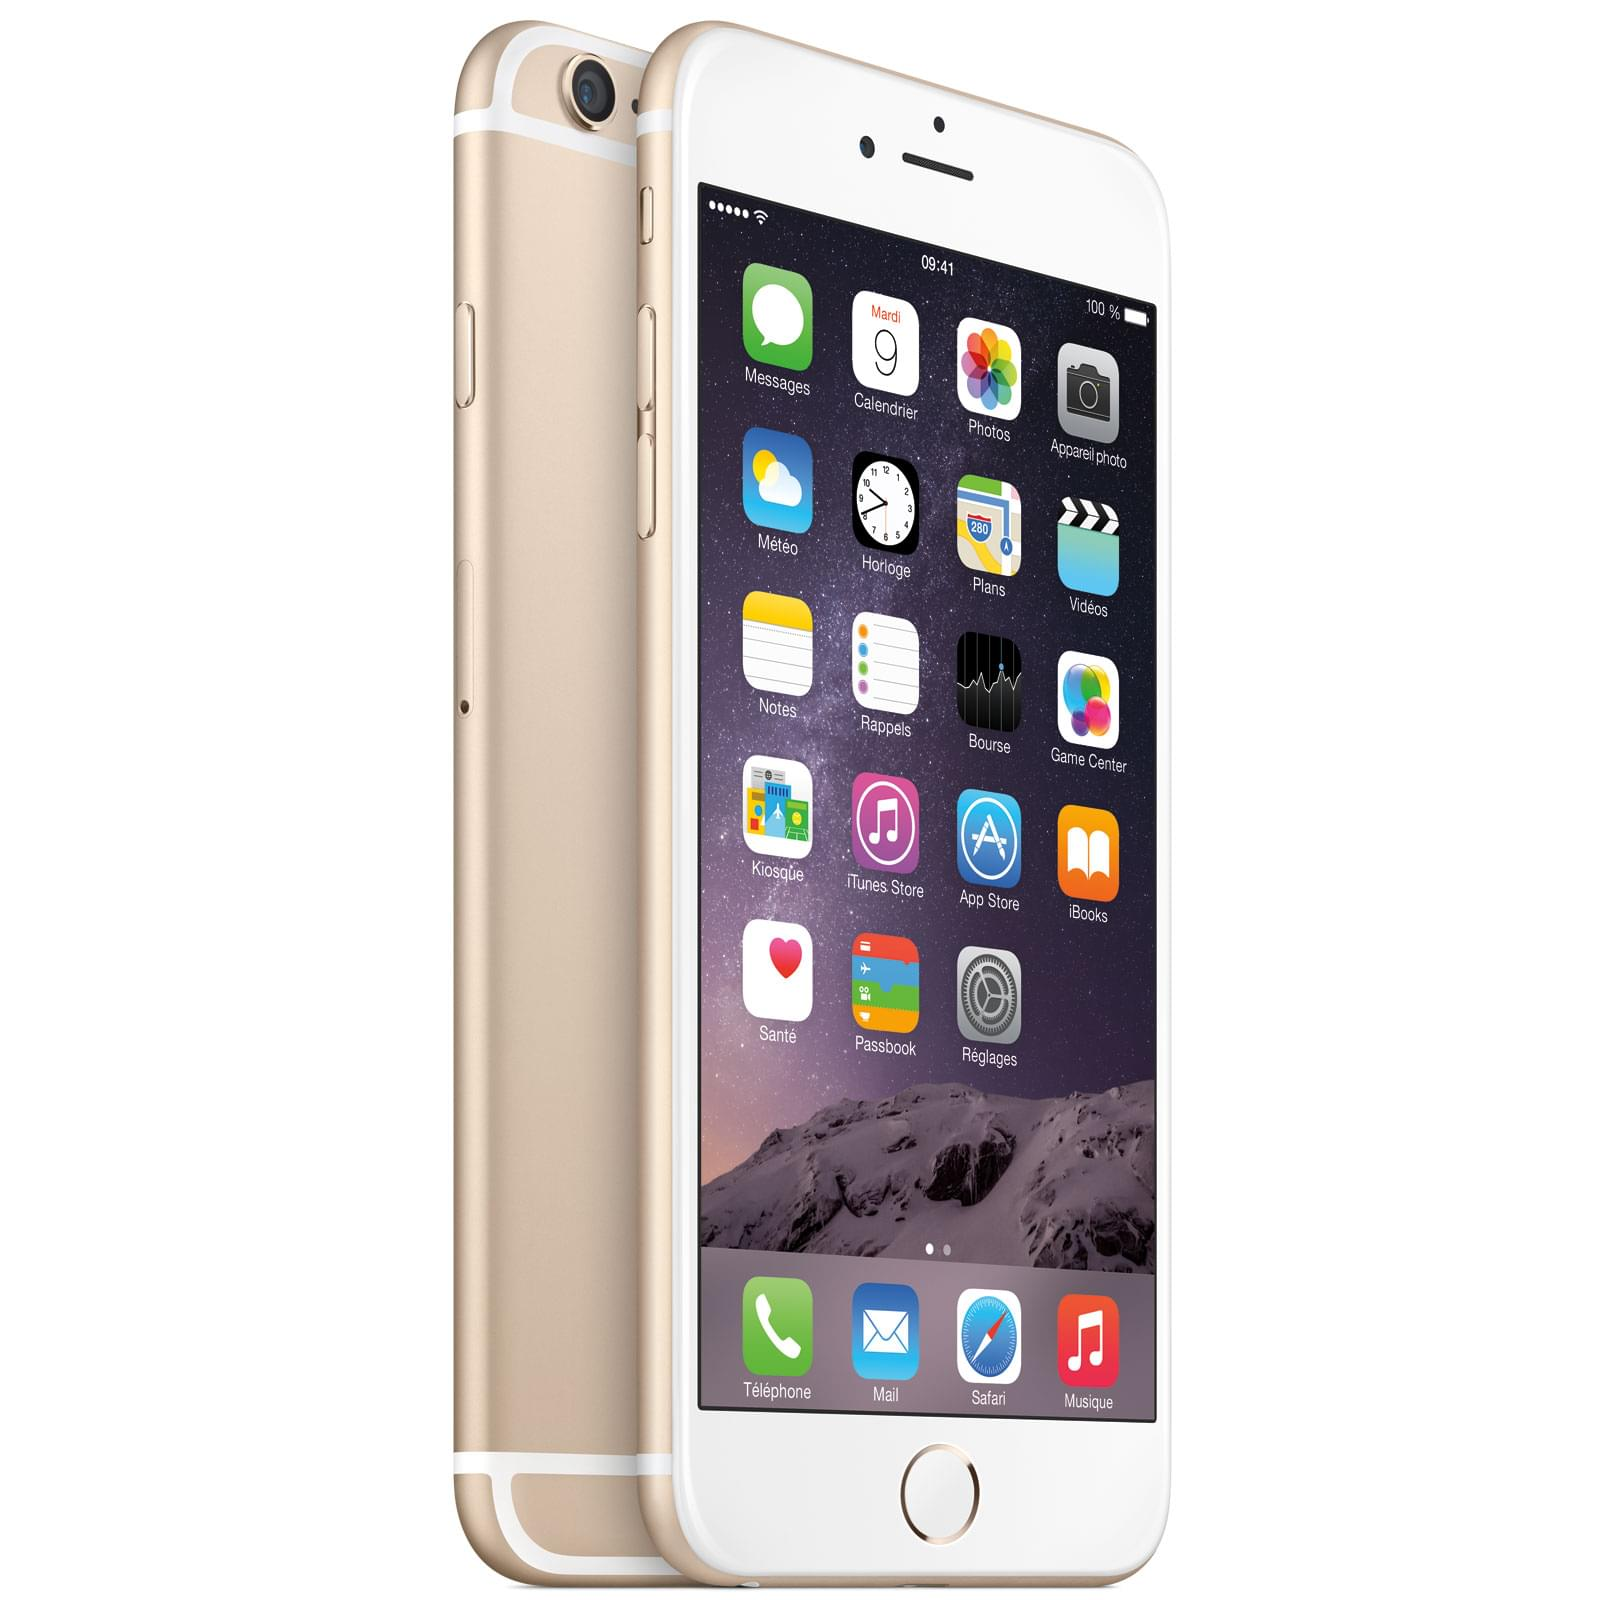 Apple iPhone 6 Plus 16Go Or (MGAA2ZD/A) - Achat / Vente Mobile et Smartphone sur Cybertek.fr - 0